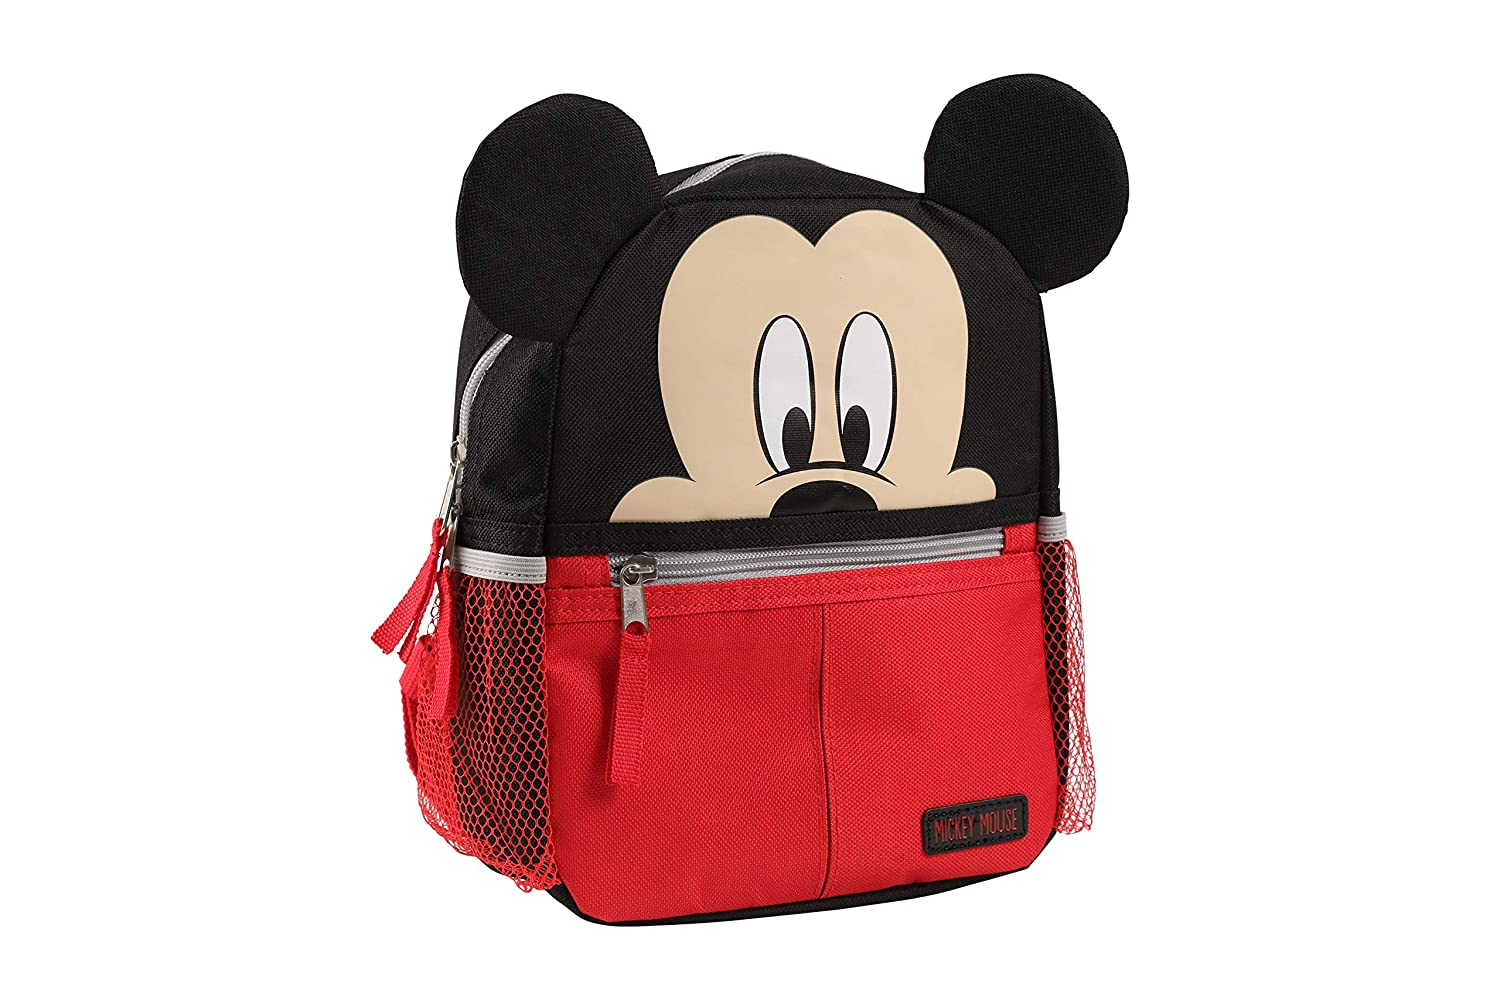 Disney Mickey Mouse Mini Backpack with Safety Harness Straps for Toddlers Cudlie Accessories DB30387-000-BLK